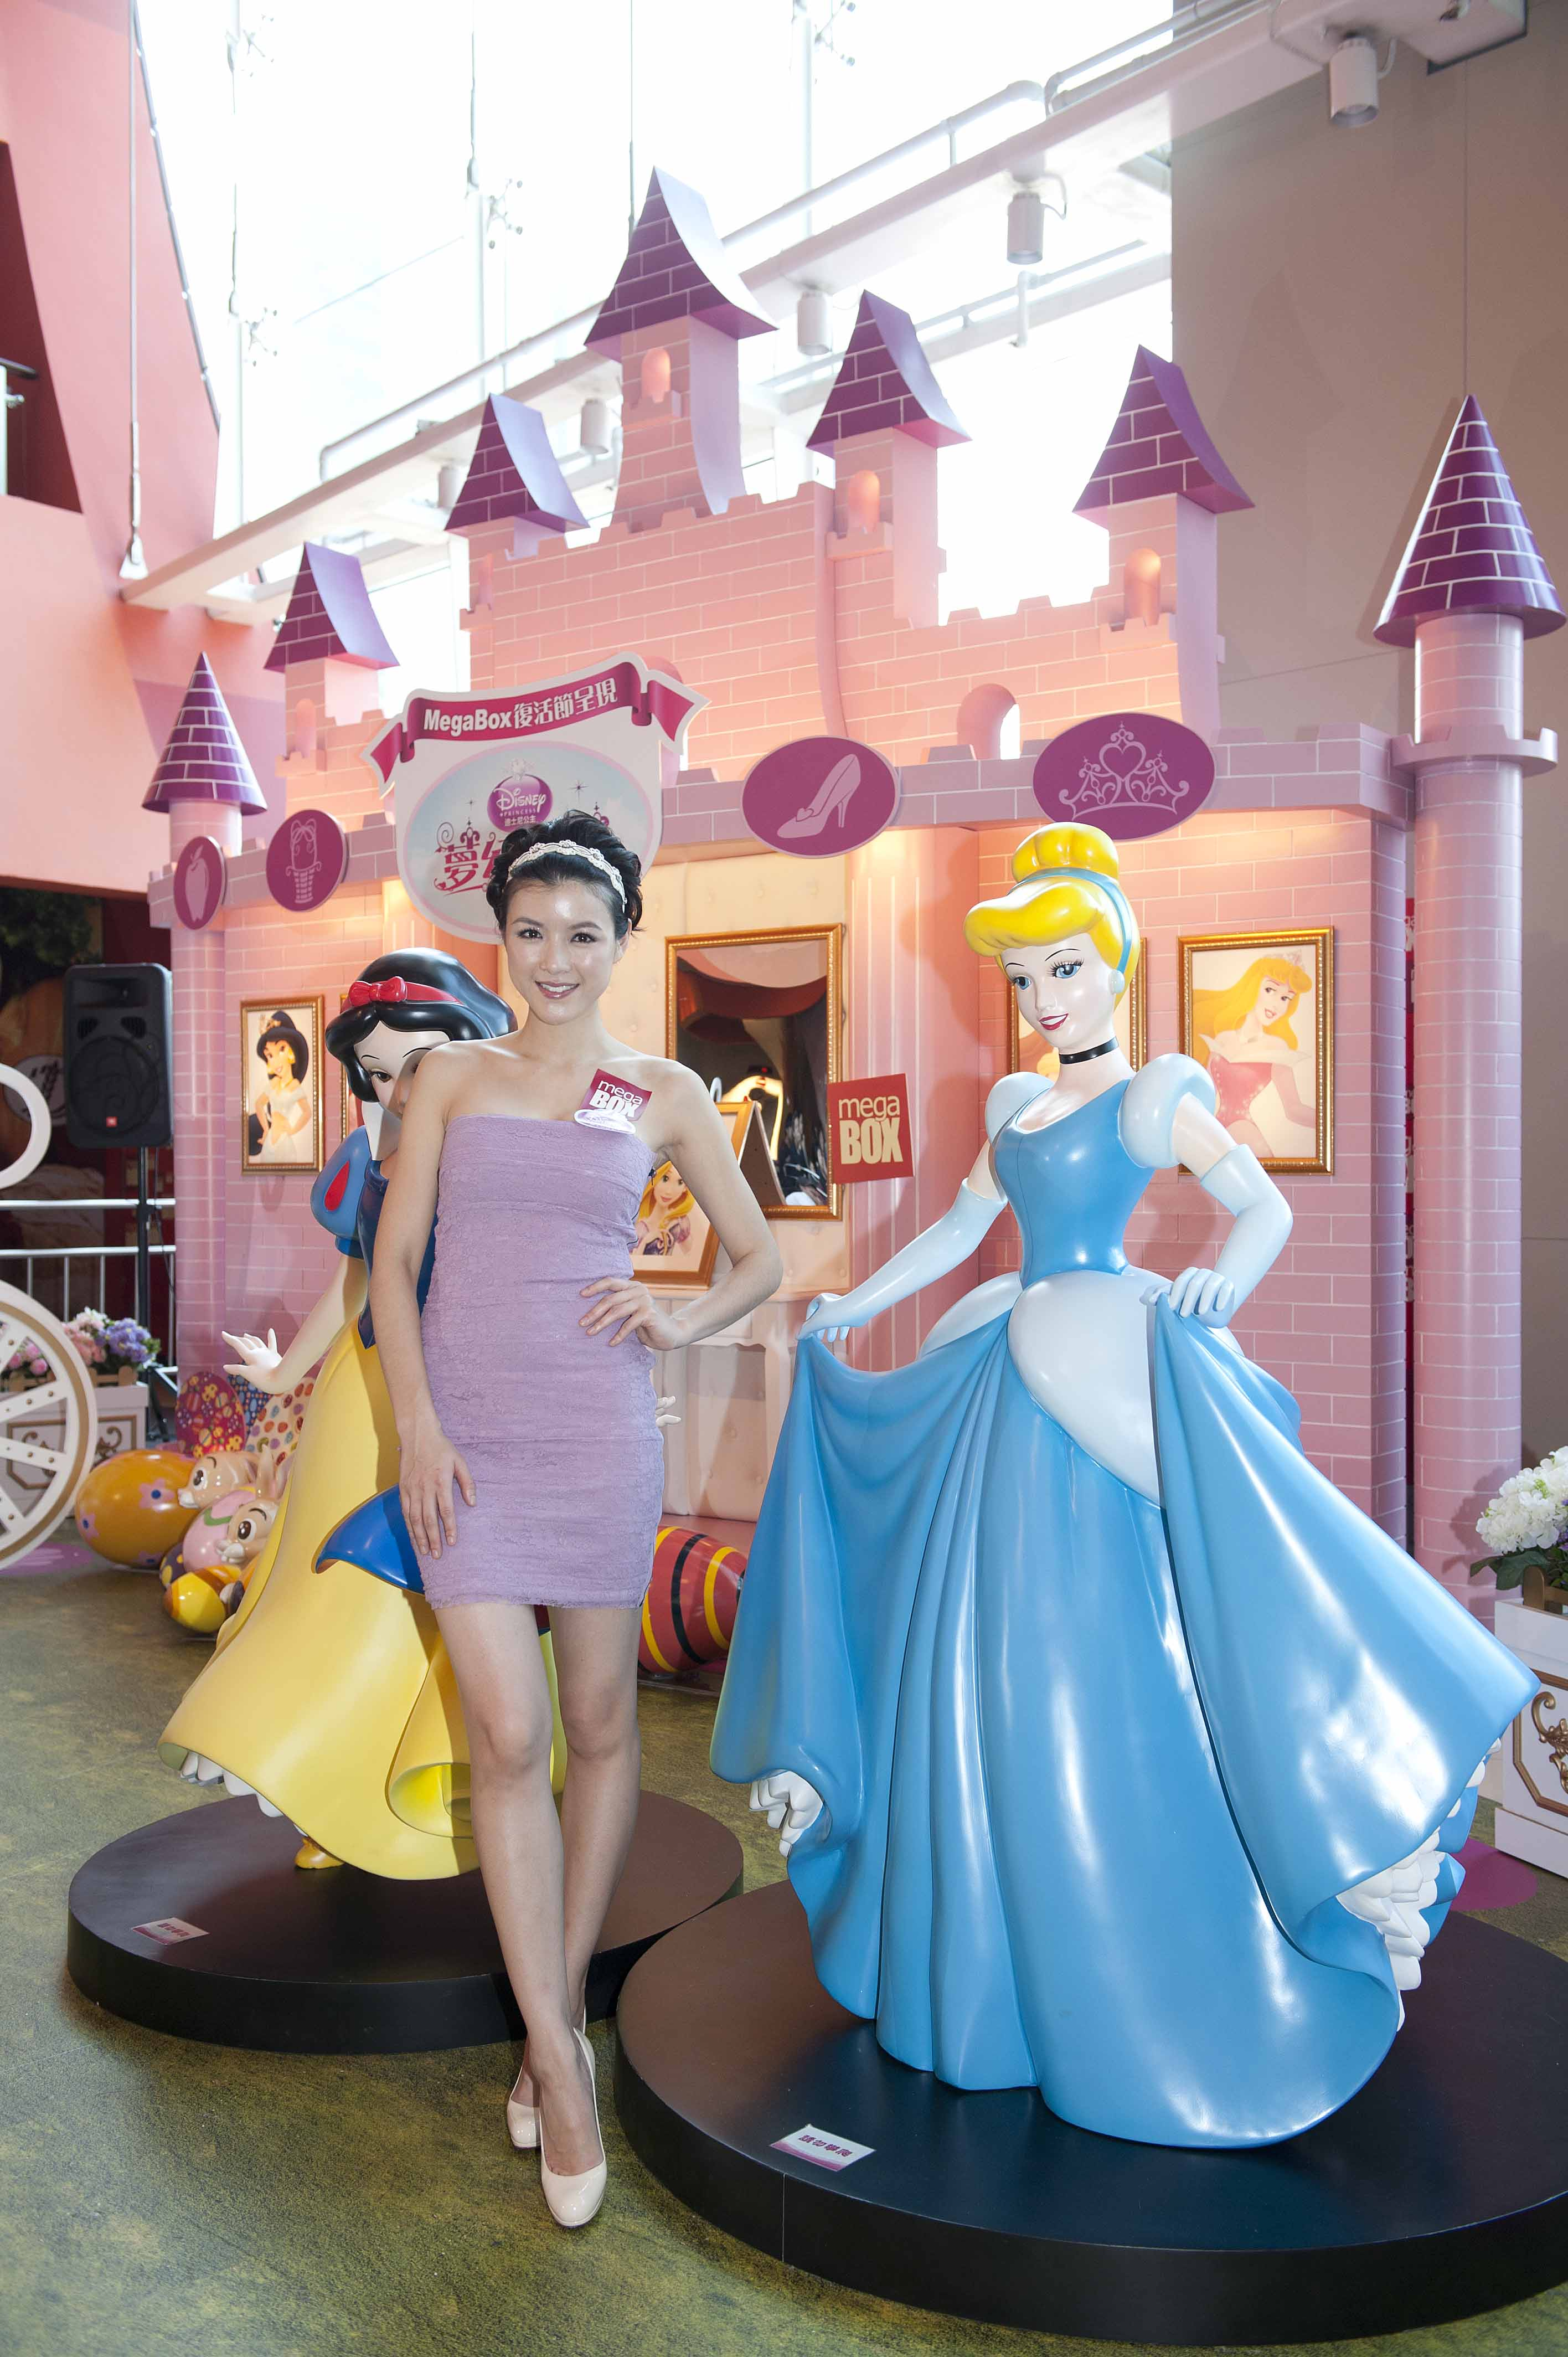 MegaBox Easter: Disney Princess Party Fantasy Kick-off